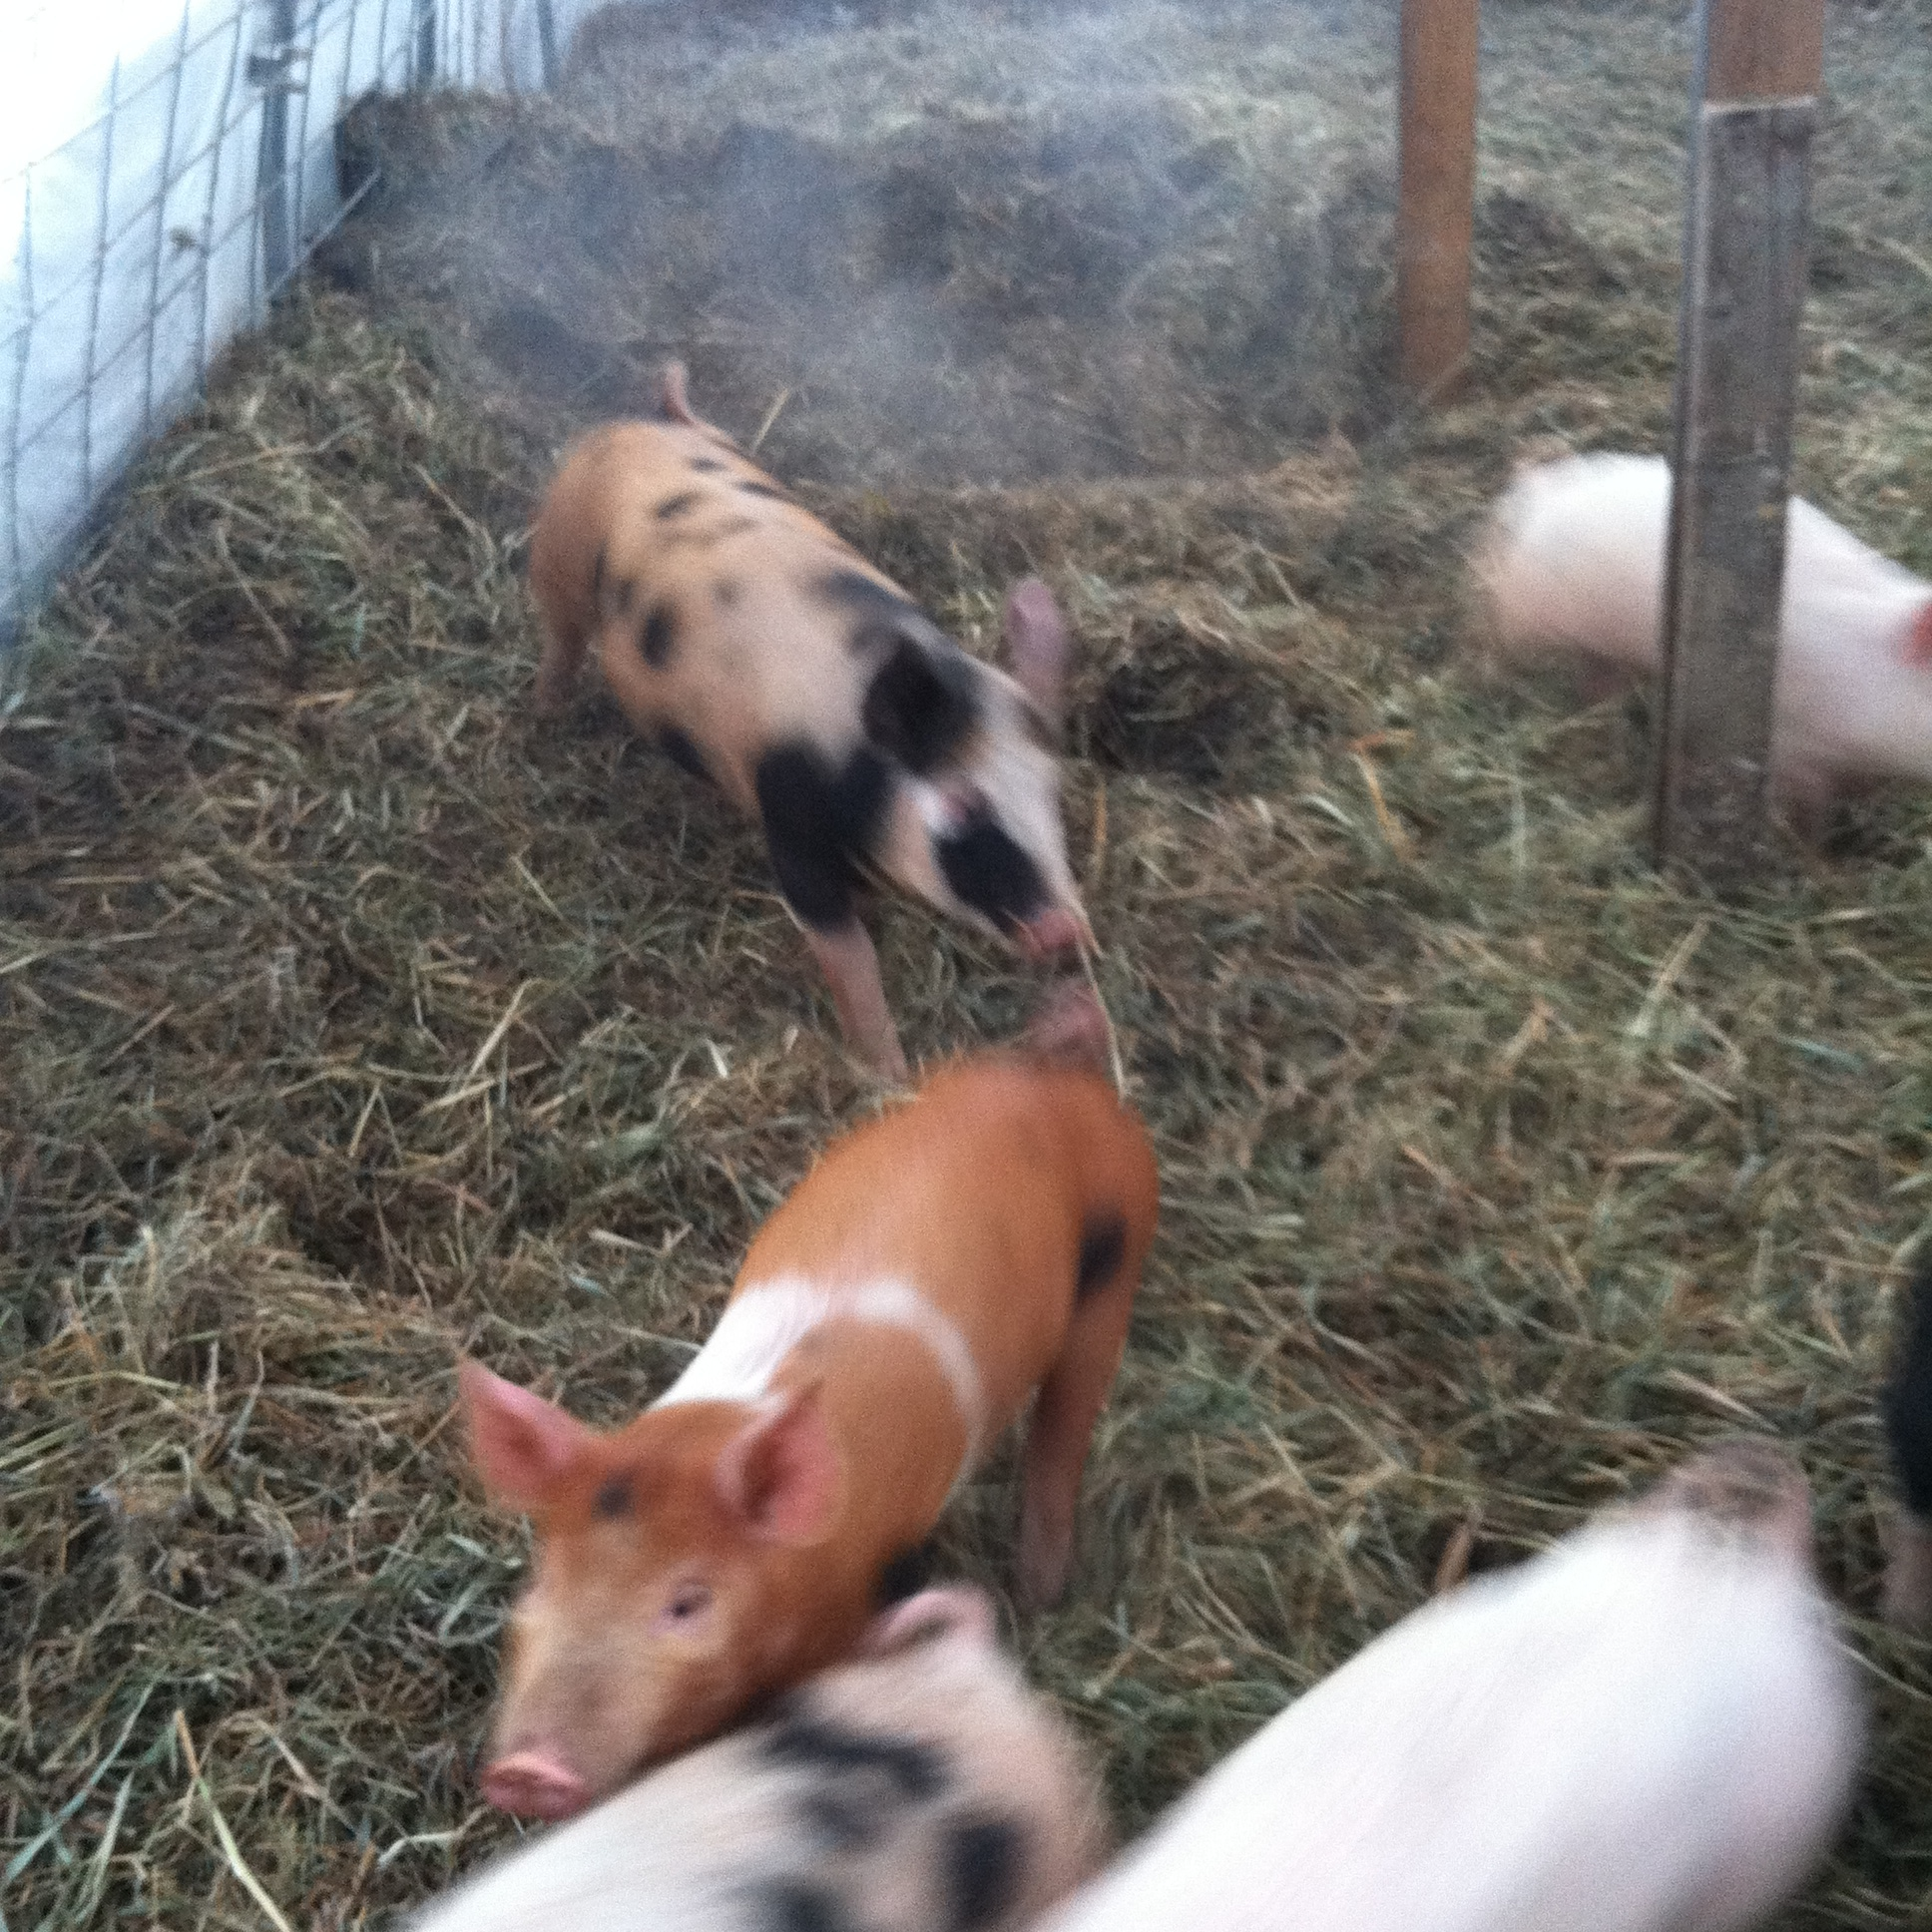 The pigs keep in warm in the hoophouse. Note the steam.